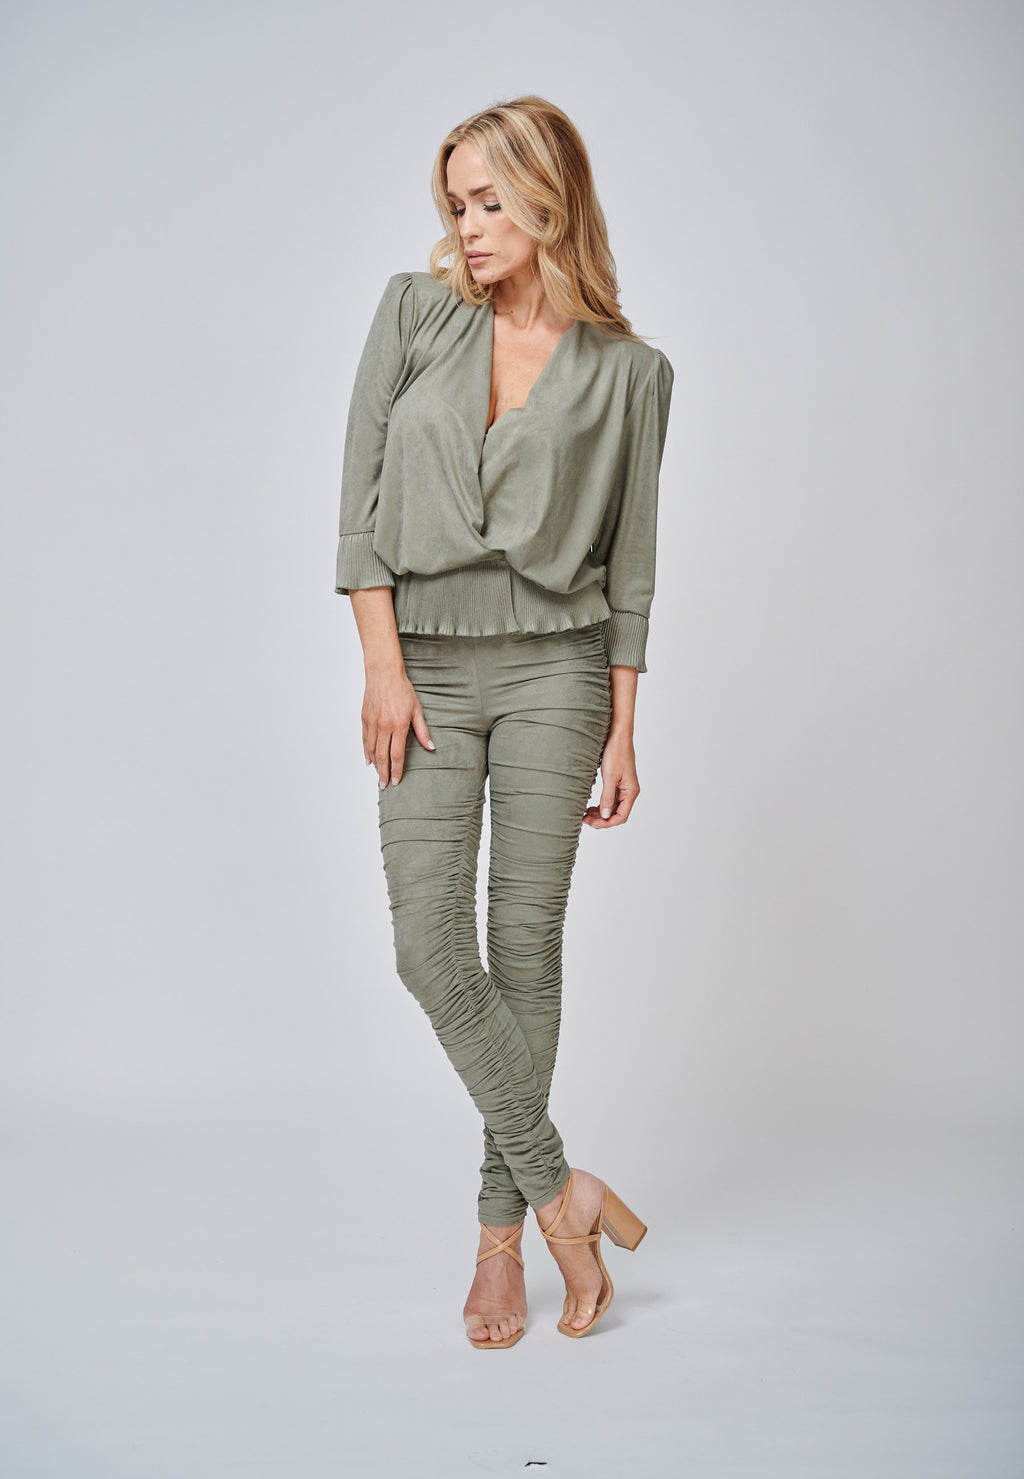 Yan Neo The Hebe Khaki Ruched Suede-Look Trouser Leggings